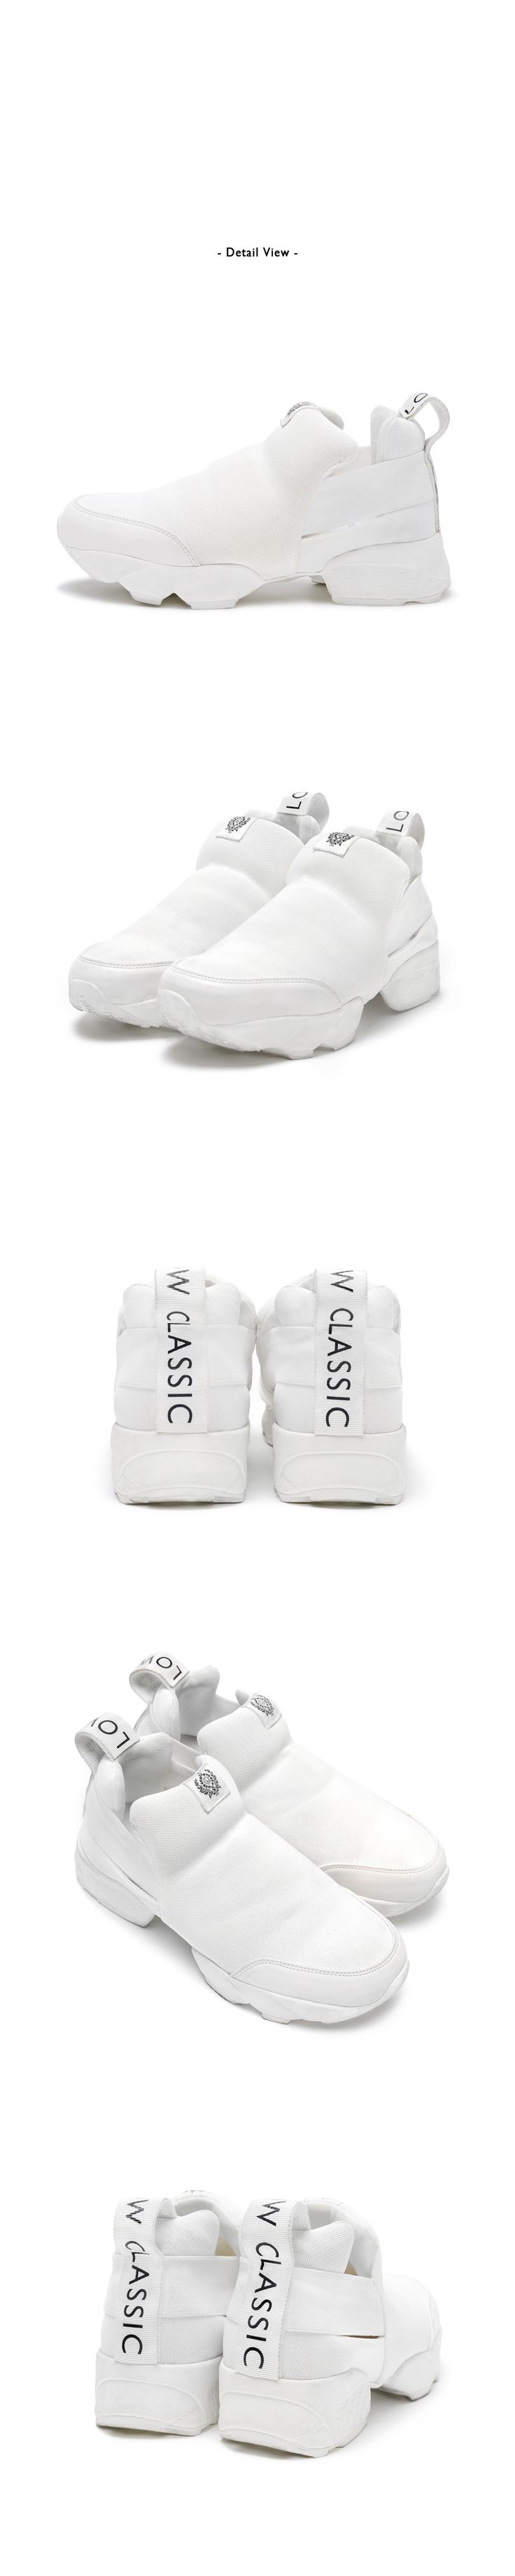 ⚪️taste of LOW CLASSIC 14FW BASIC RUNNING SHOES —— KRW 148,000